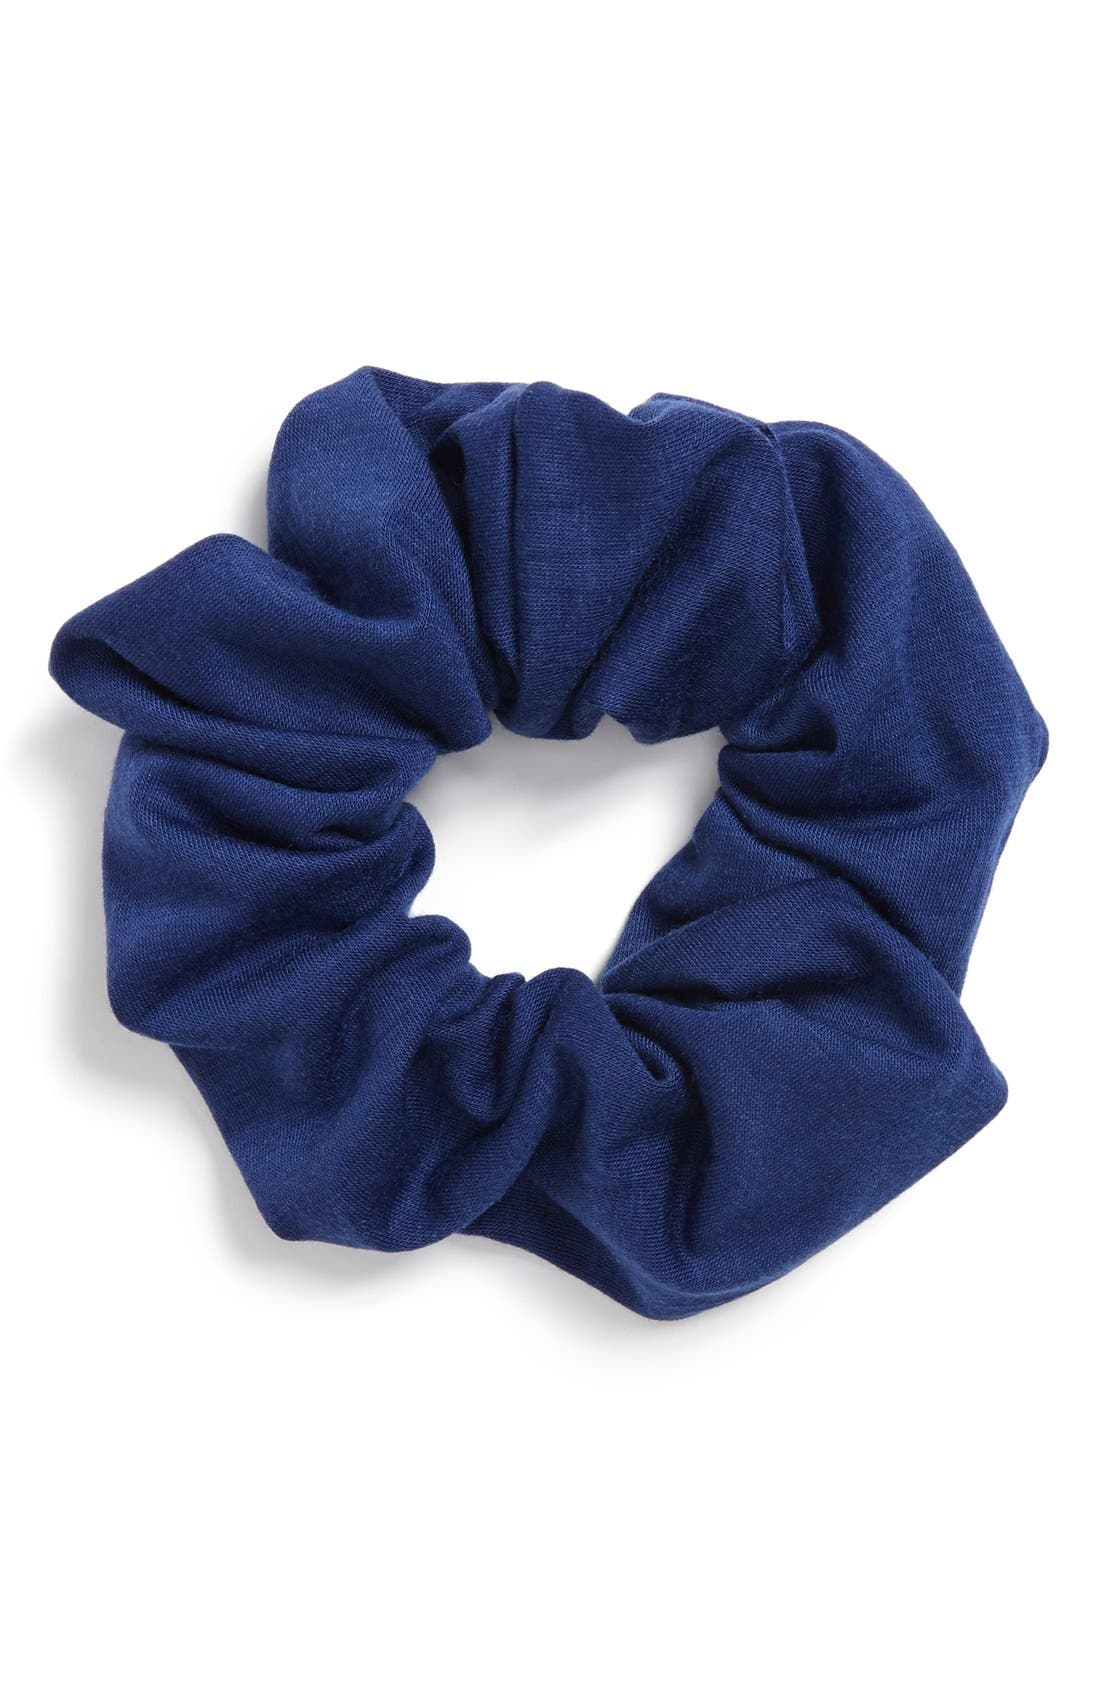 Main Image - Natasha Couture 'Wrinkle in Time' Scrunchie